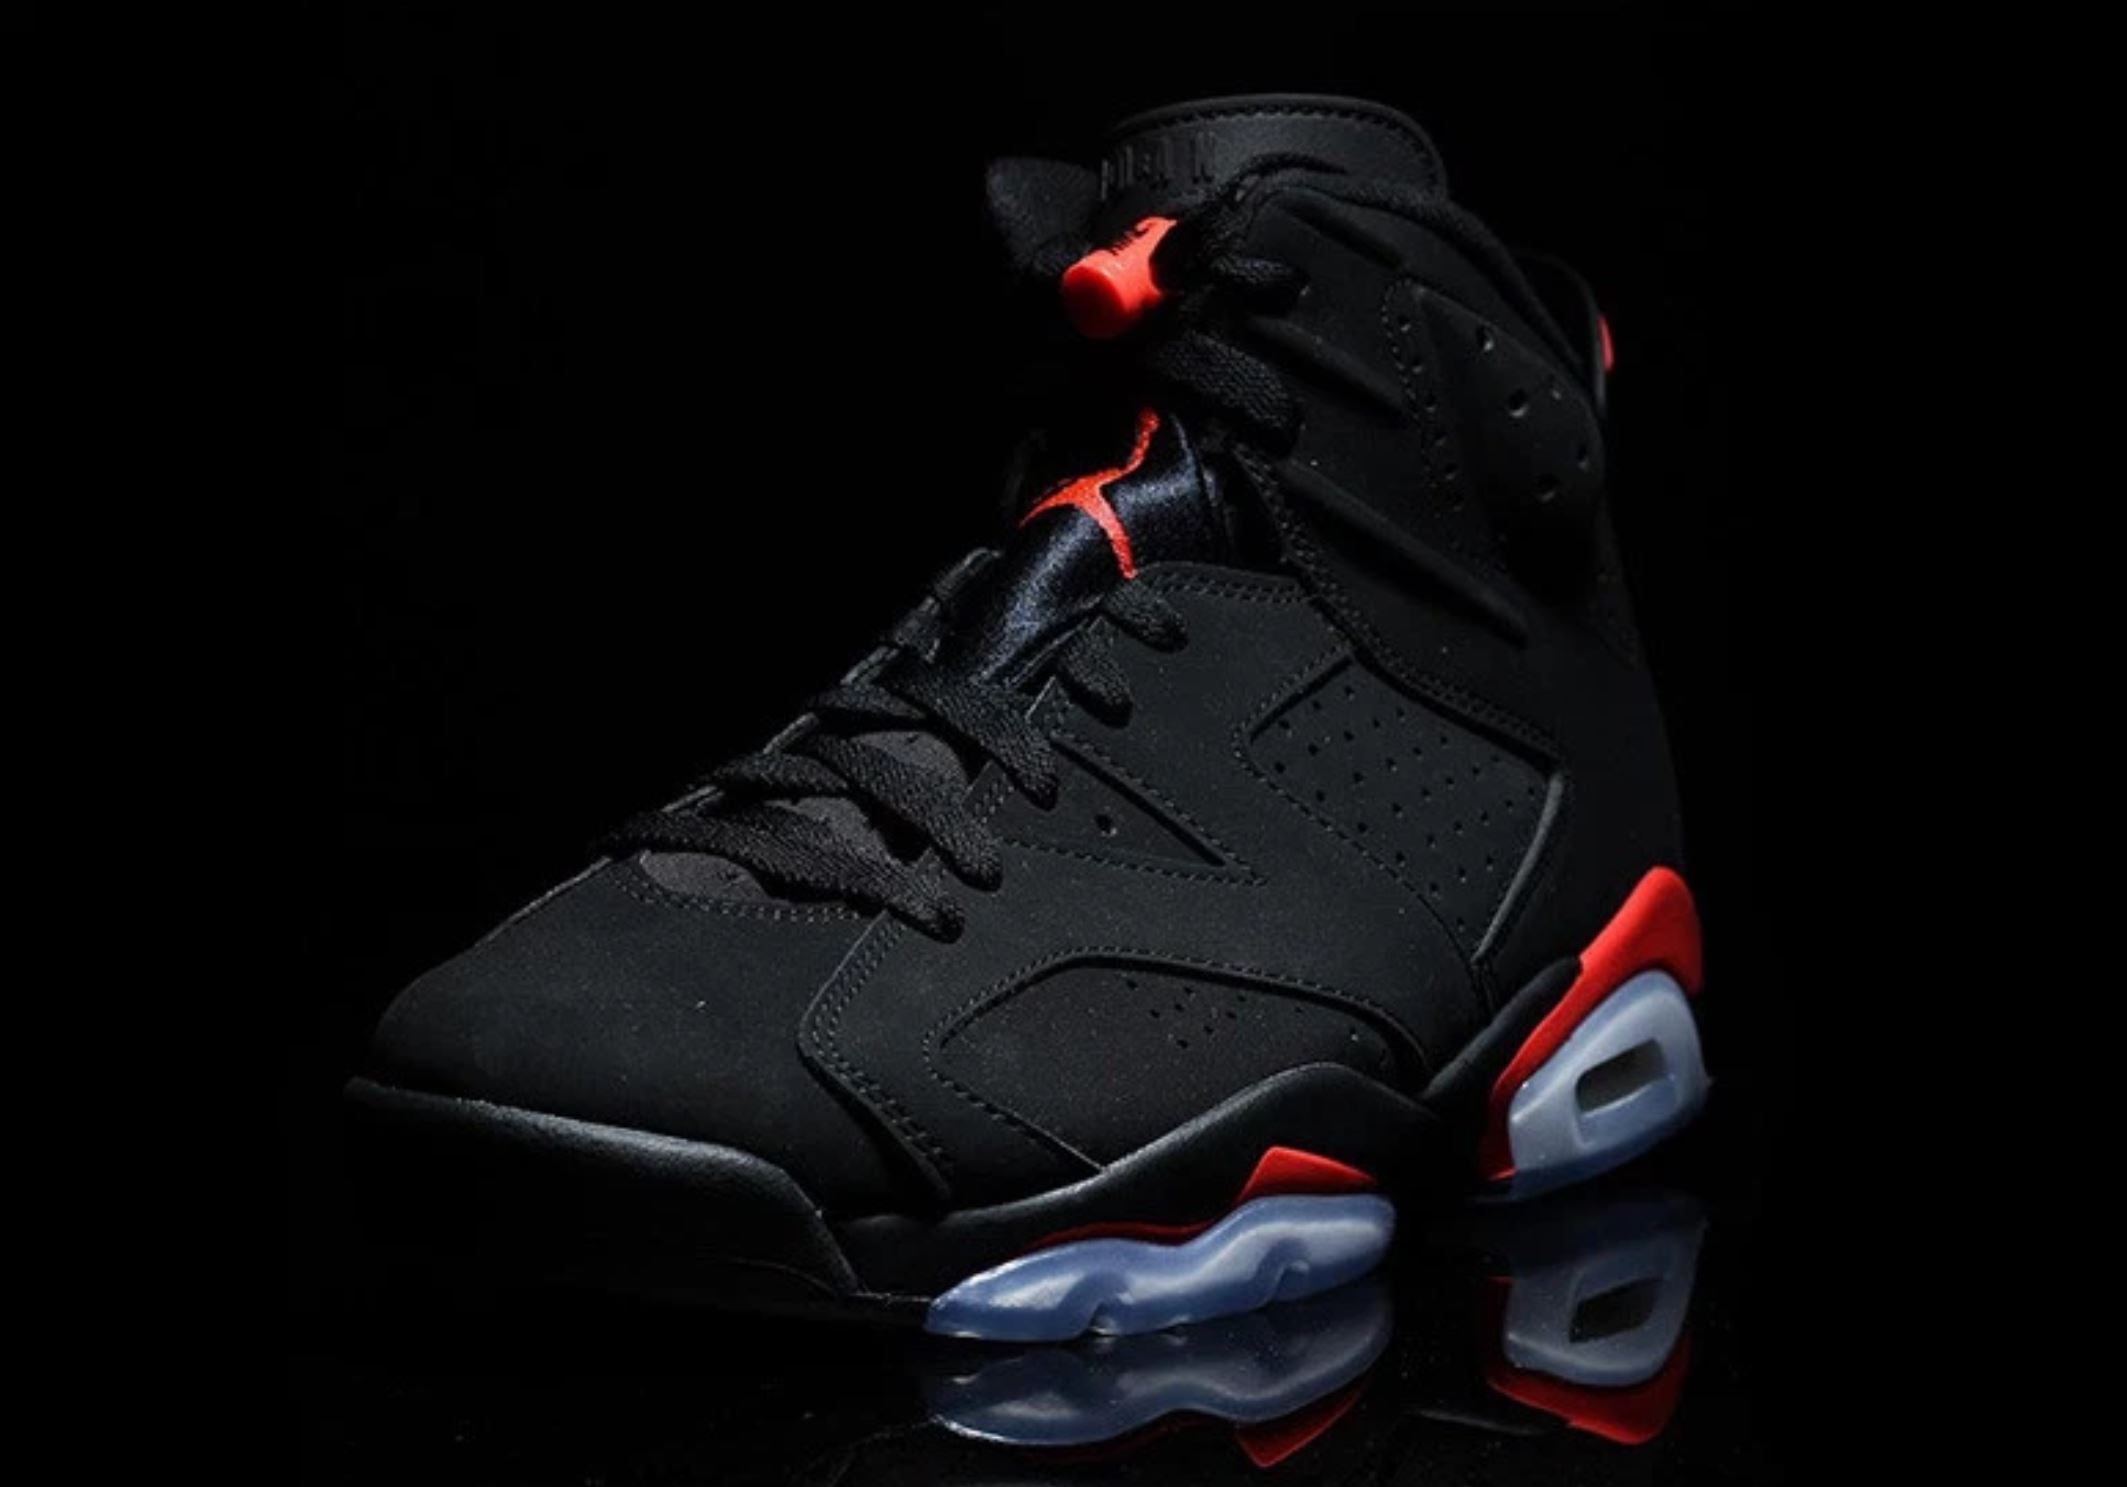 air jordan 6 black infrared release date